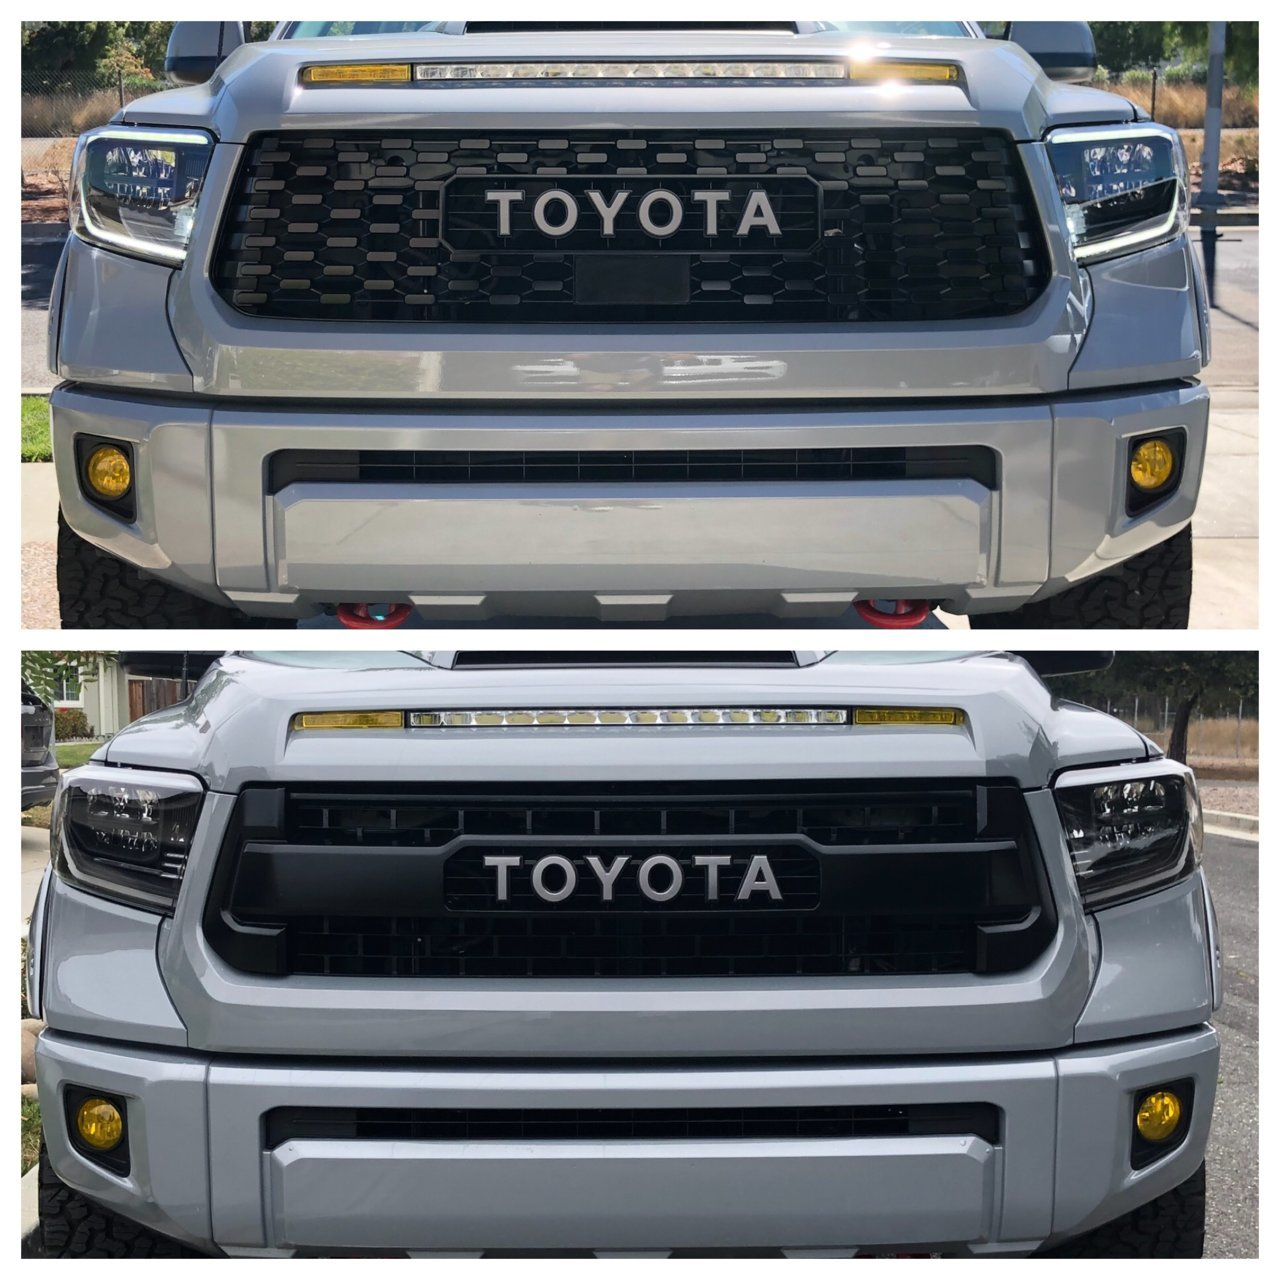 2019 Trd Pro Grille Insert Swap Before And After Toyota Tundra Forum